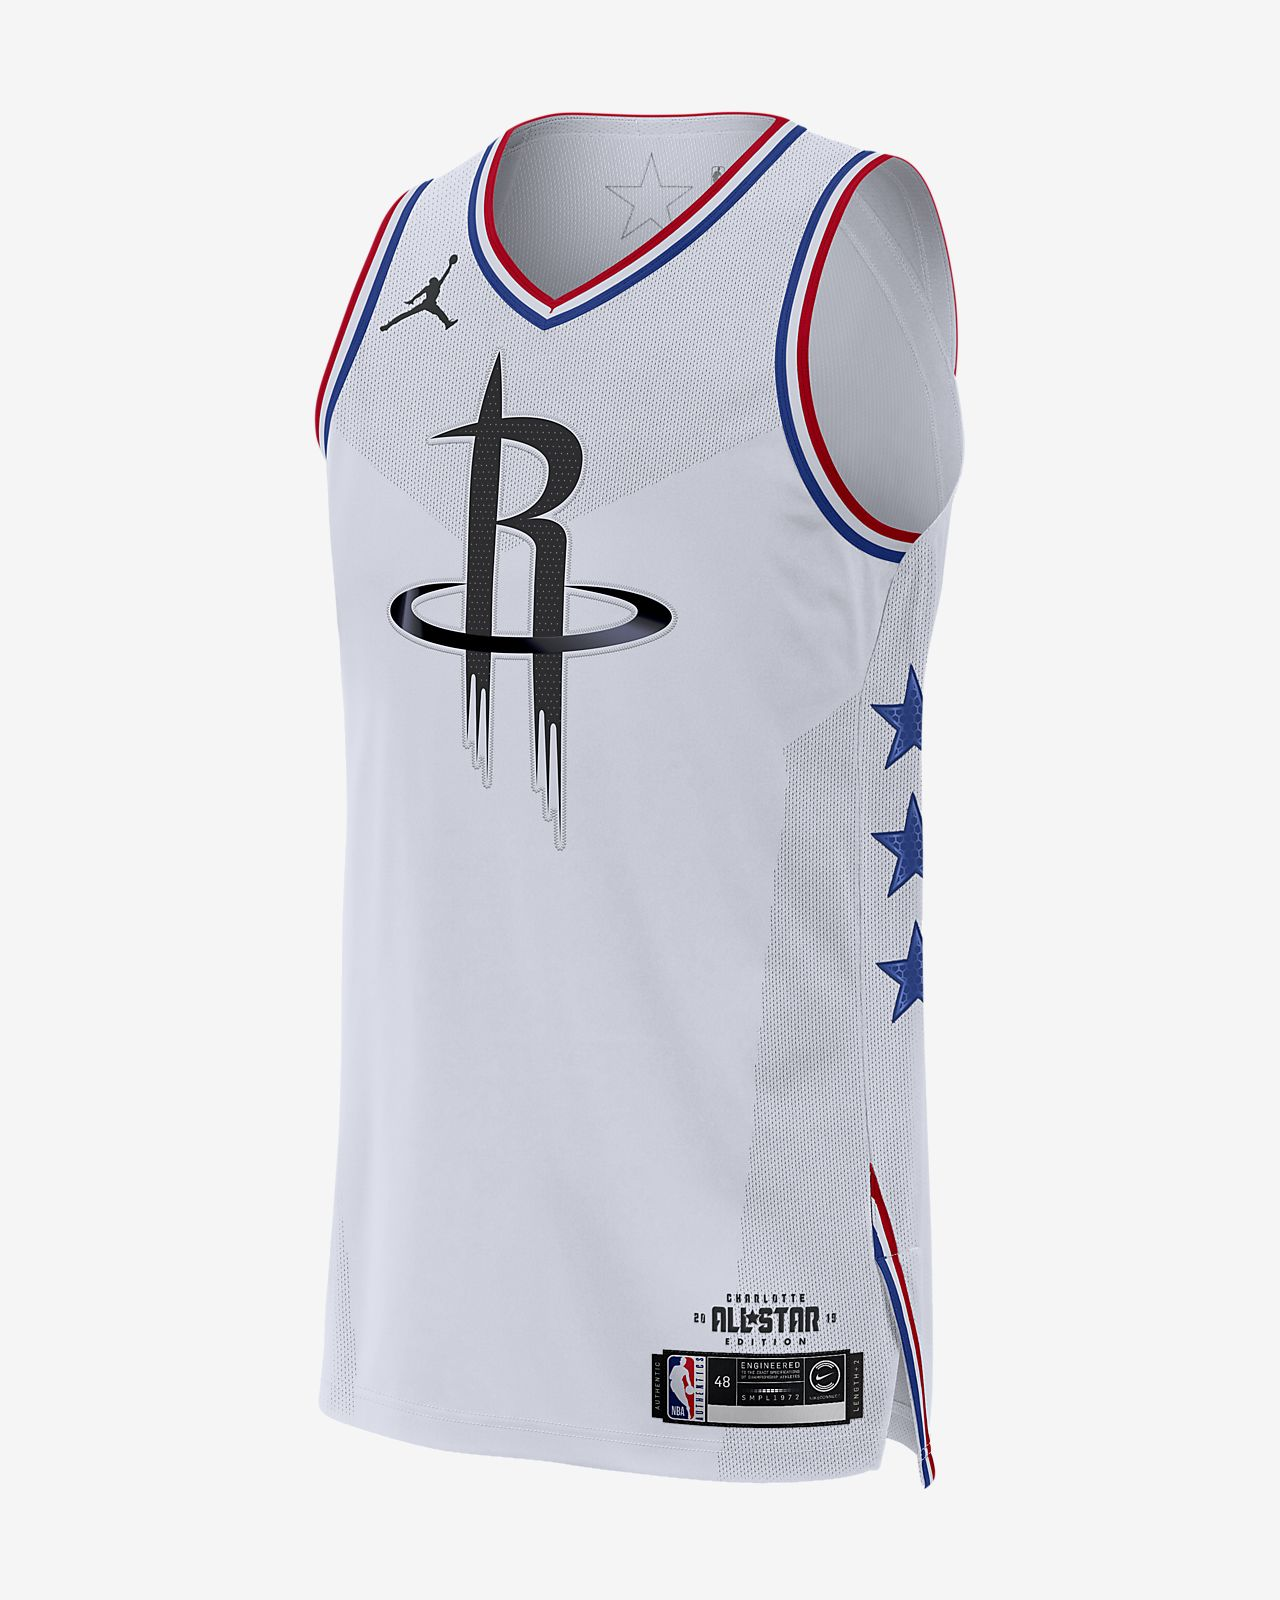 James Harden All-Star Edition Authentic Jordan NBA Connected Jersey 男子球衣